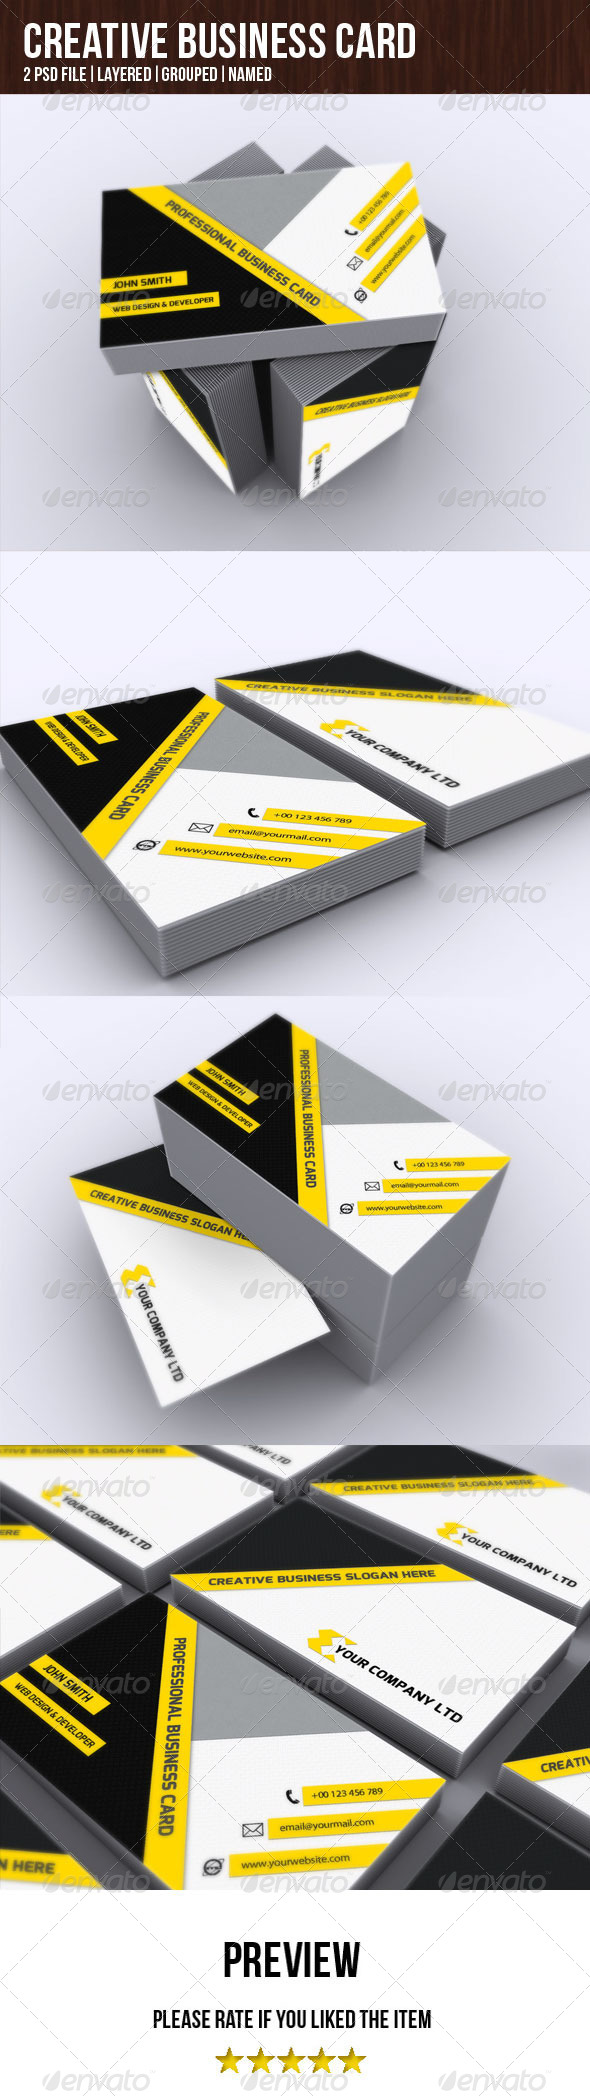 GraphicRiver Creative Business Card 4981071